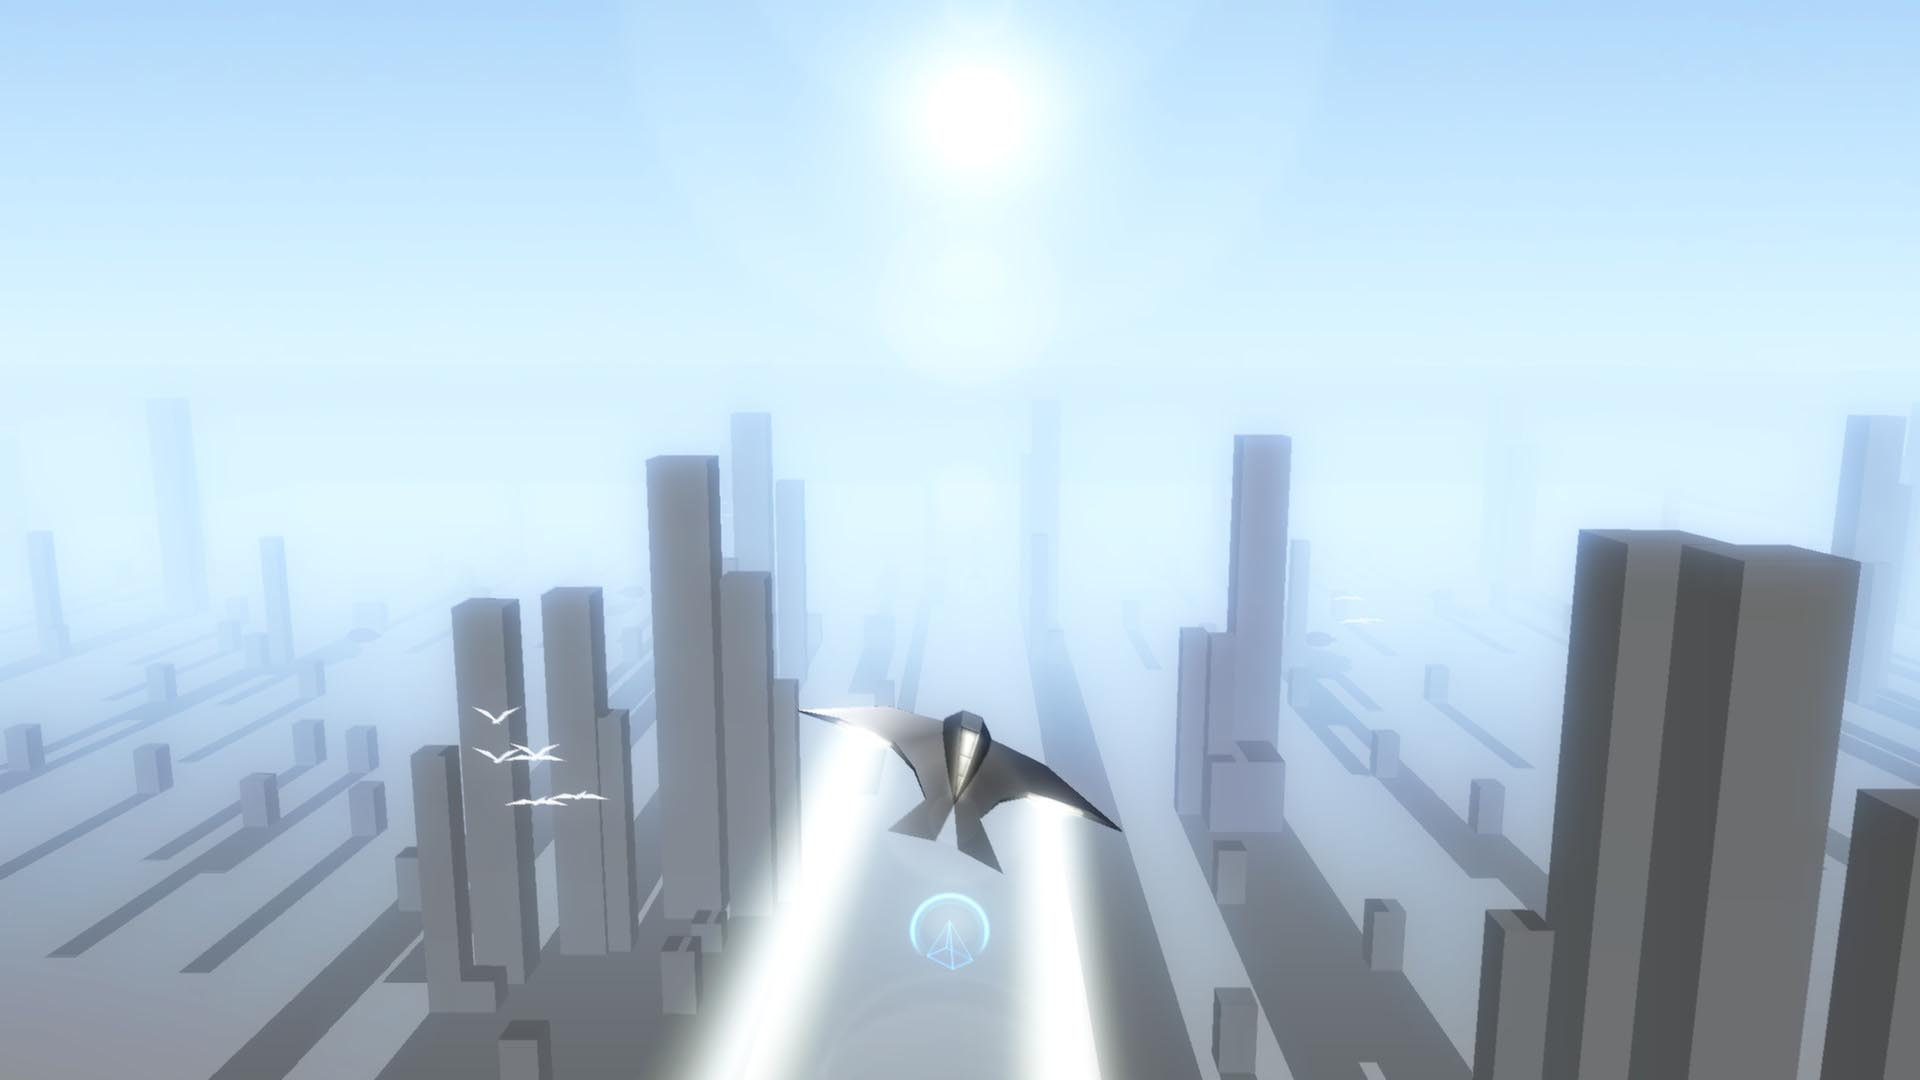 It's an endless runner (remember Canabalt?) but in a car. Despite the looming obstacles and twitch-based gameplay, it's a relatively zen experience, with nothing but you and the minimalist environment.   <b>For:</b> PC, Mac, Linux, PS4, PS3, Vita